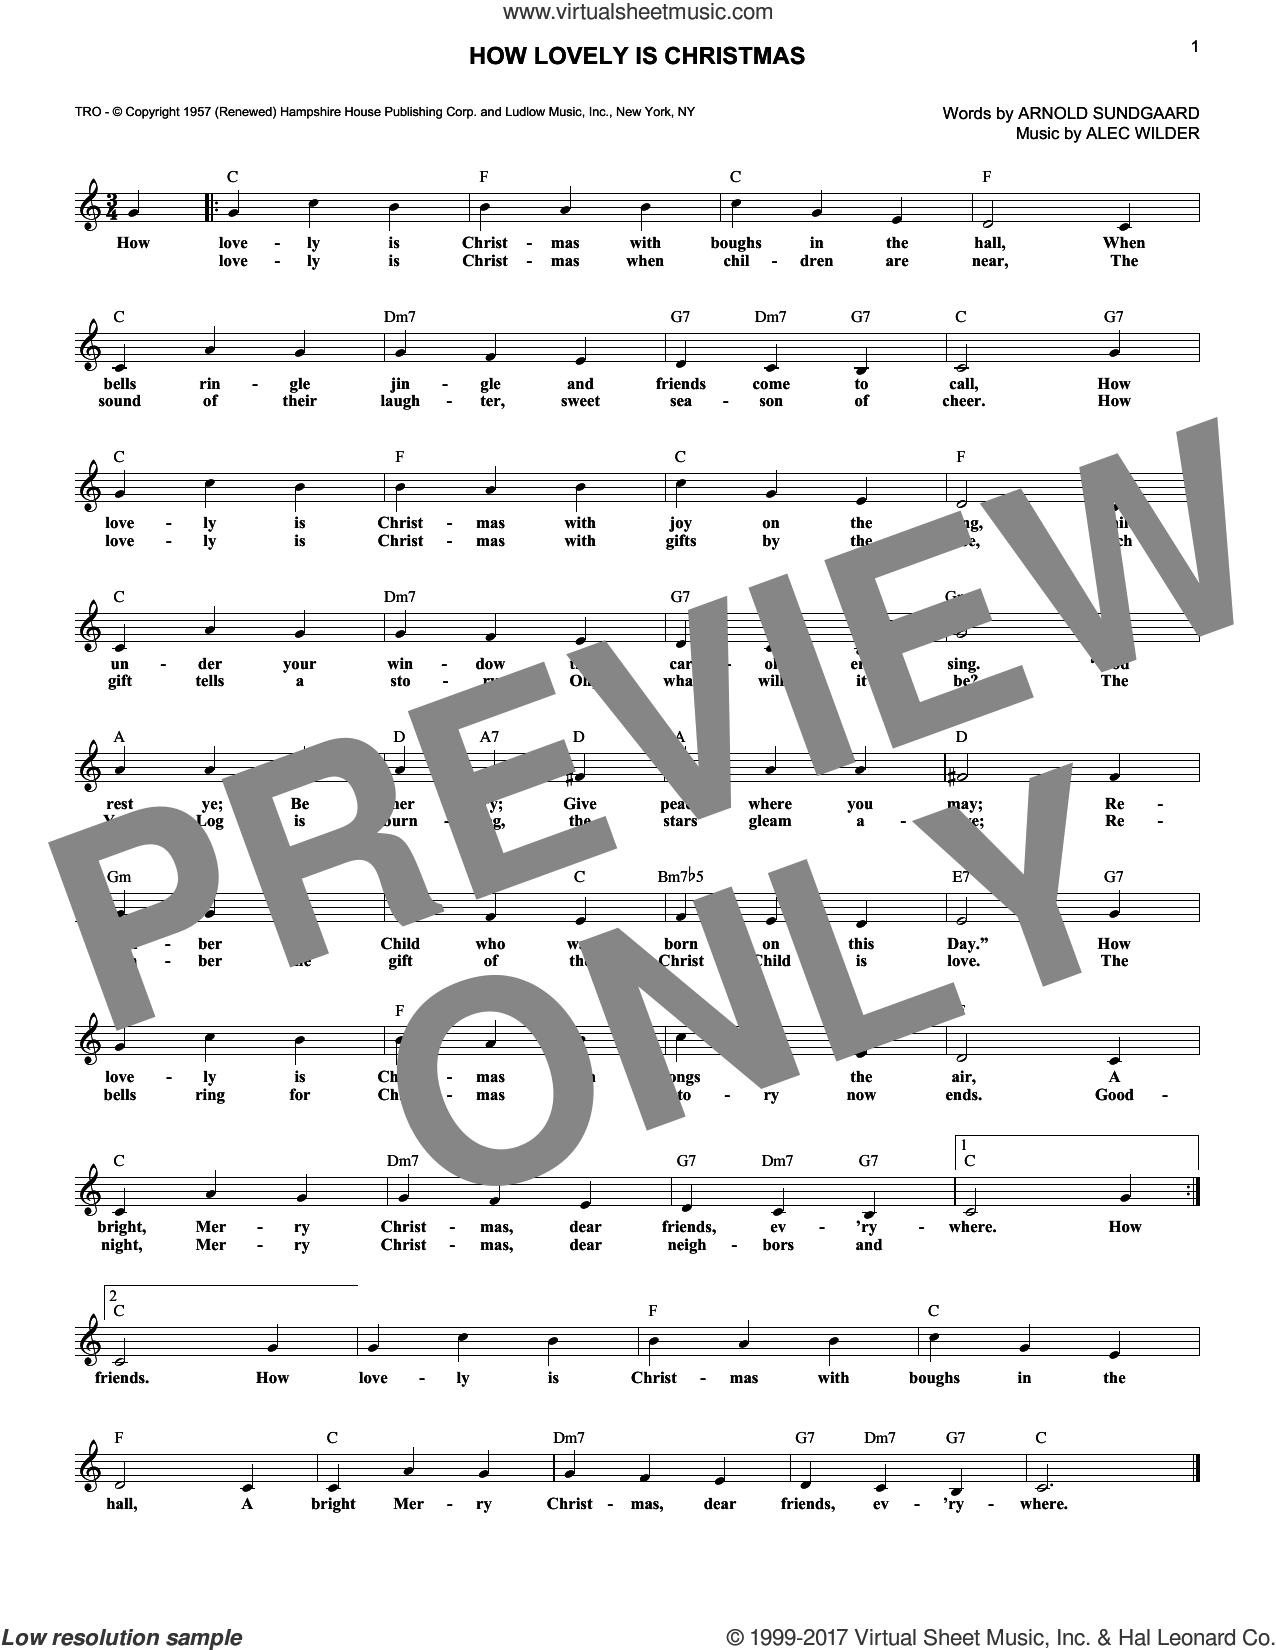 How Lovely Is Christmas sheet music for voice and other instruments (fake book) by Alec Wilder and Arnold Sundgaard, intermediate skill level